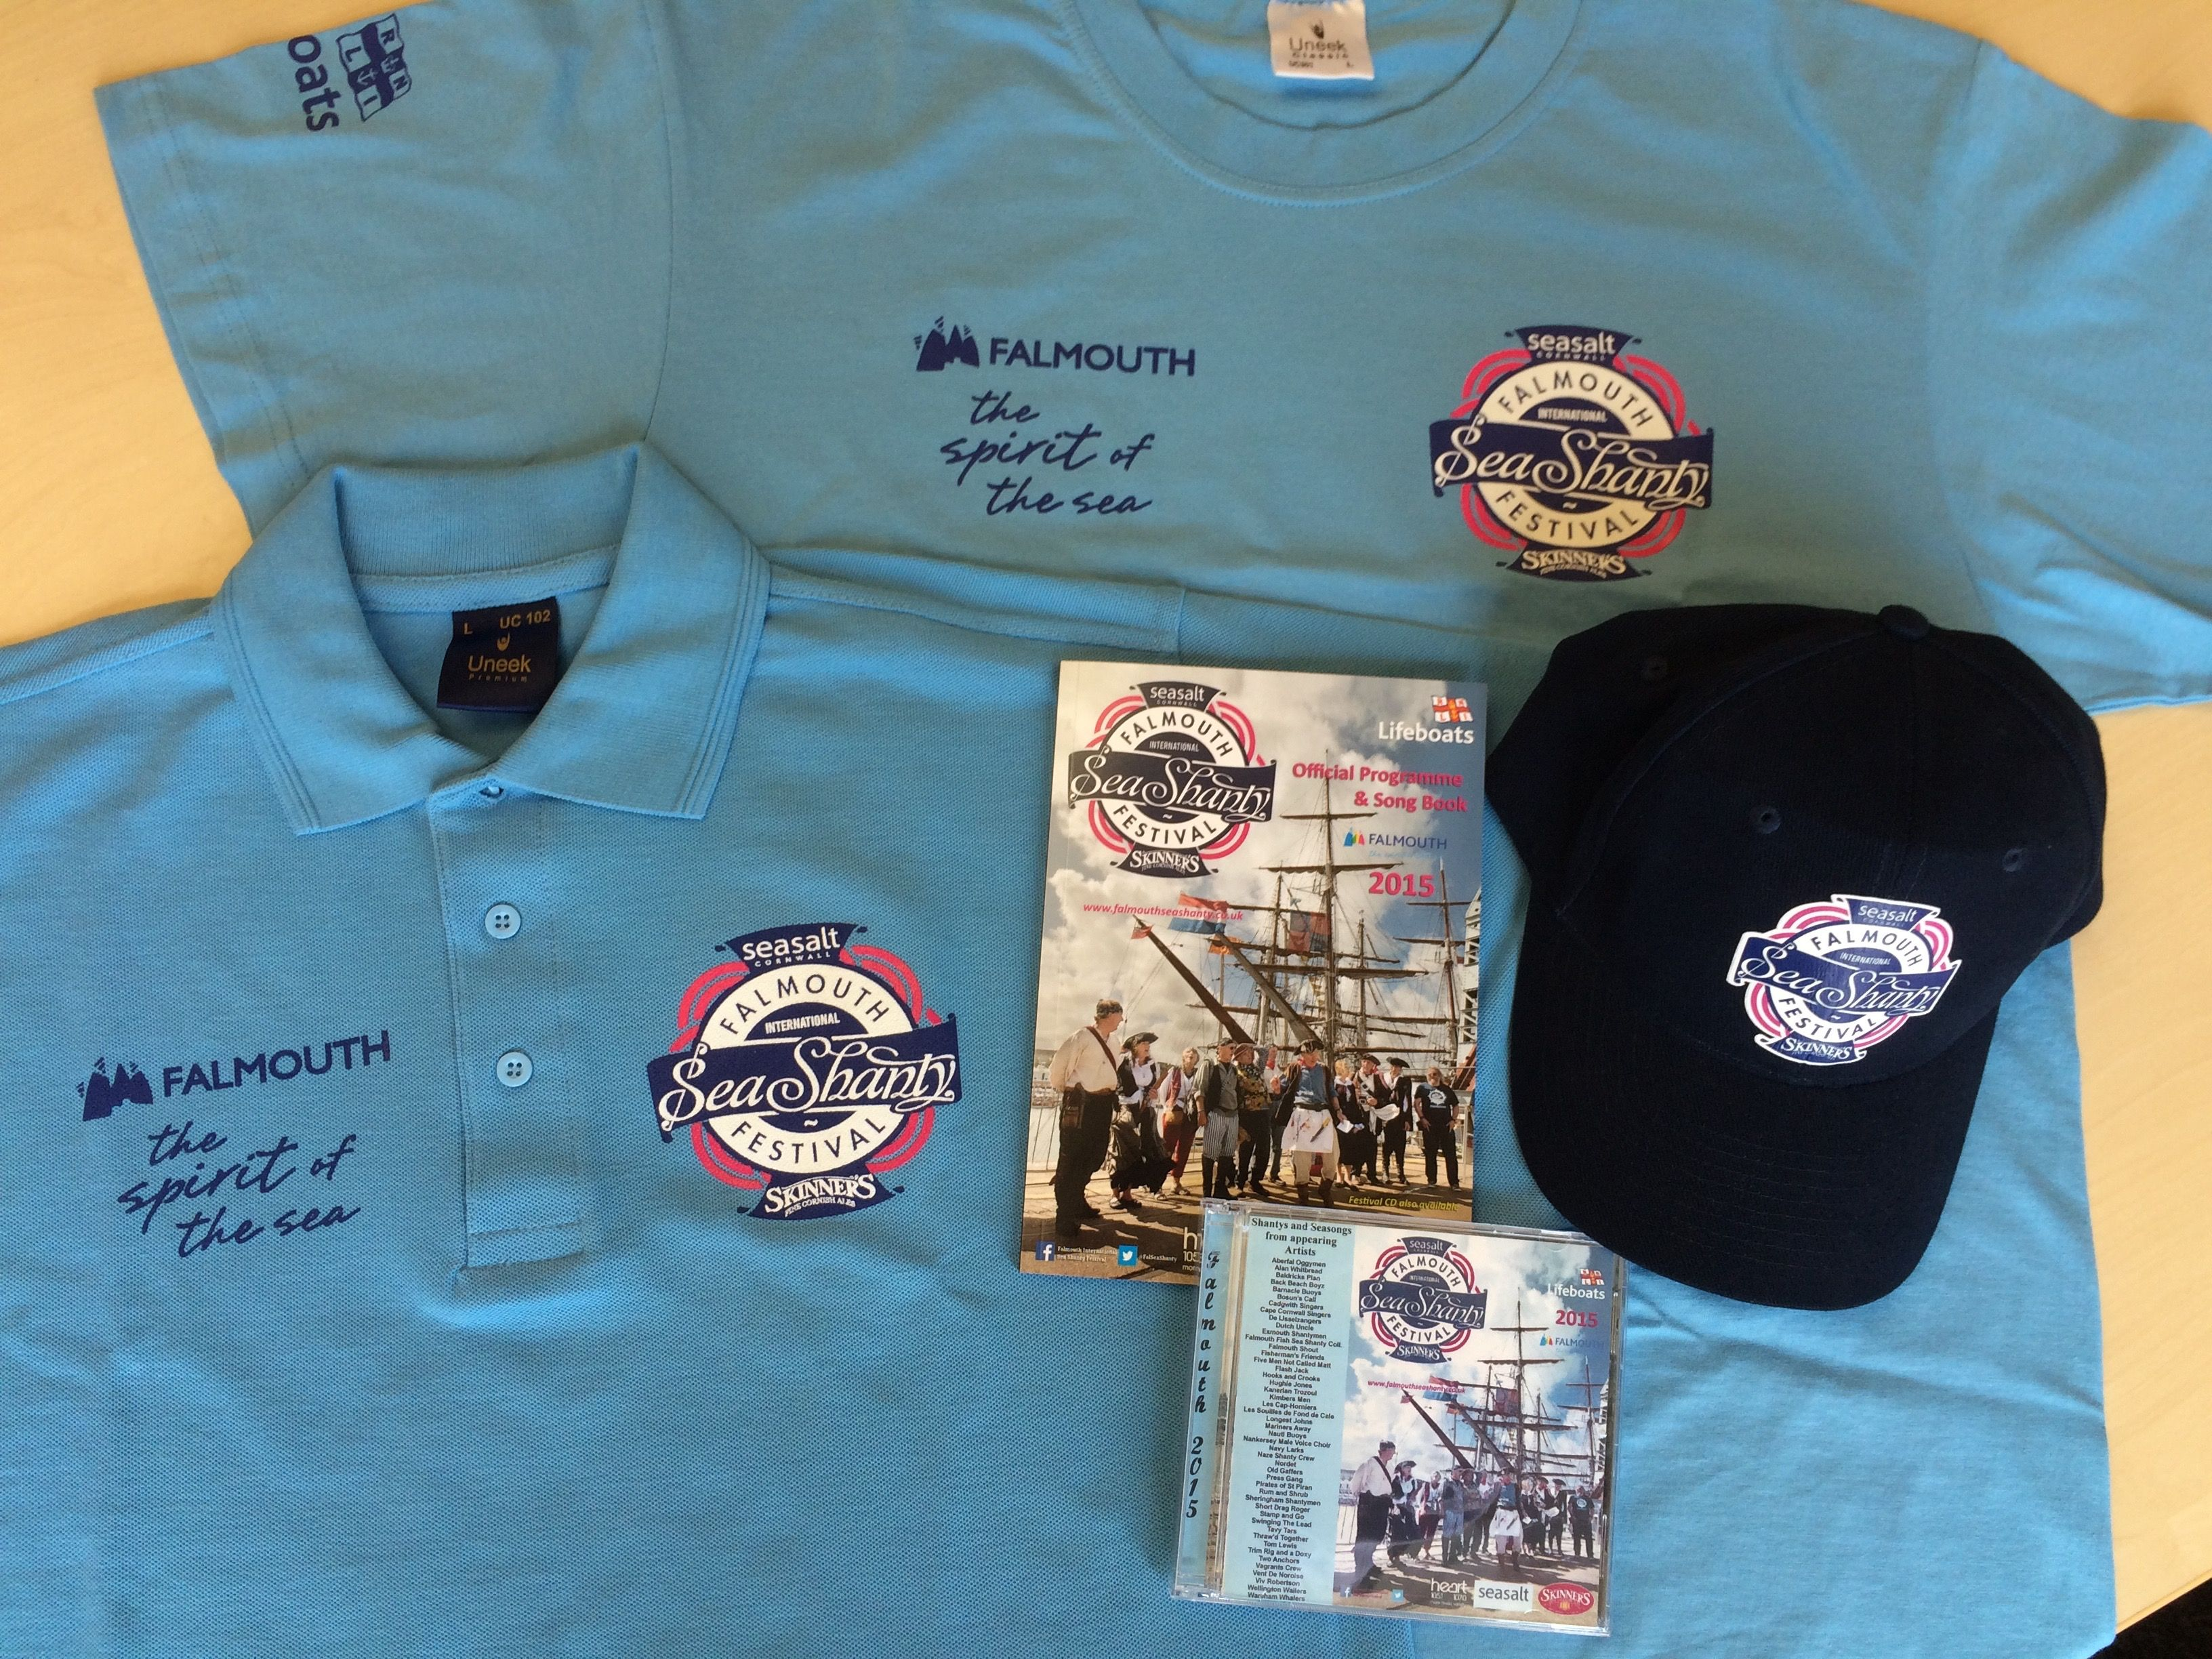 You can get your official merchandise online now at www.falmouthseashanty.co.uk. On the weekend we'll be selling T-shirts, polo shirts, badges, caps, programs and CD's at the Festival Shop on Custom House Quay and also in the Cornish Store, on Arwenack Street.